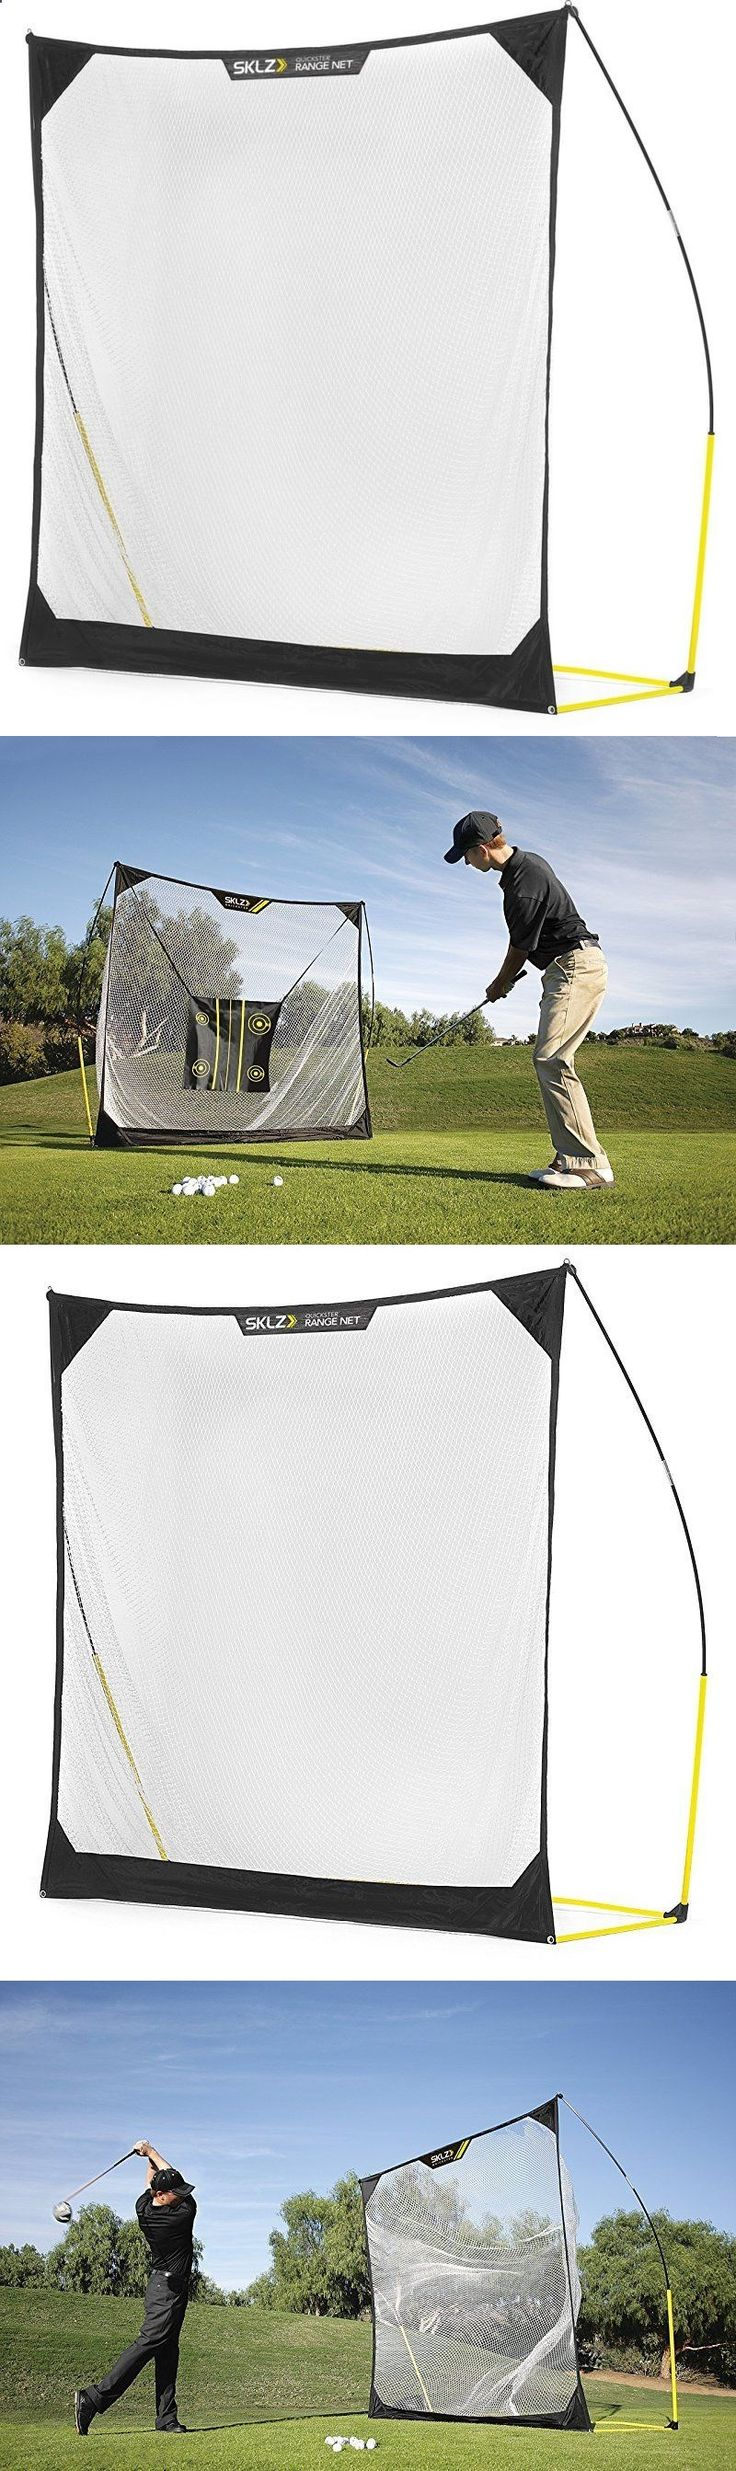 Golf Net - Nets Cages and Mats 50876: Golf Practice Net With Target Indoors Outdoors Sklz Quickster -> BUY IT NOW ONLY: $89.8 on eBay!